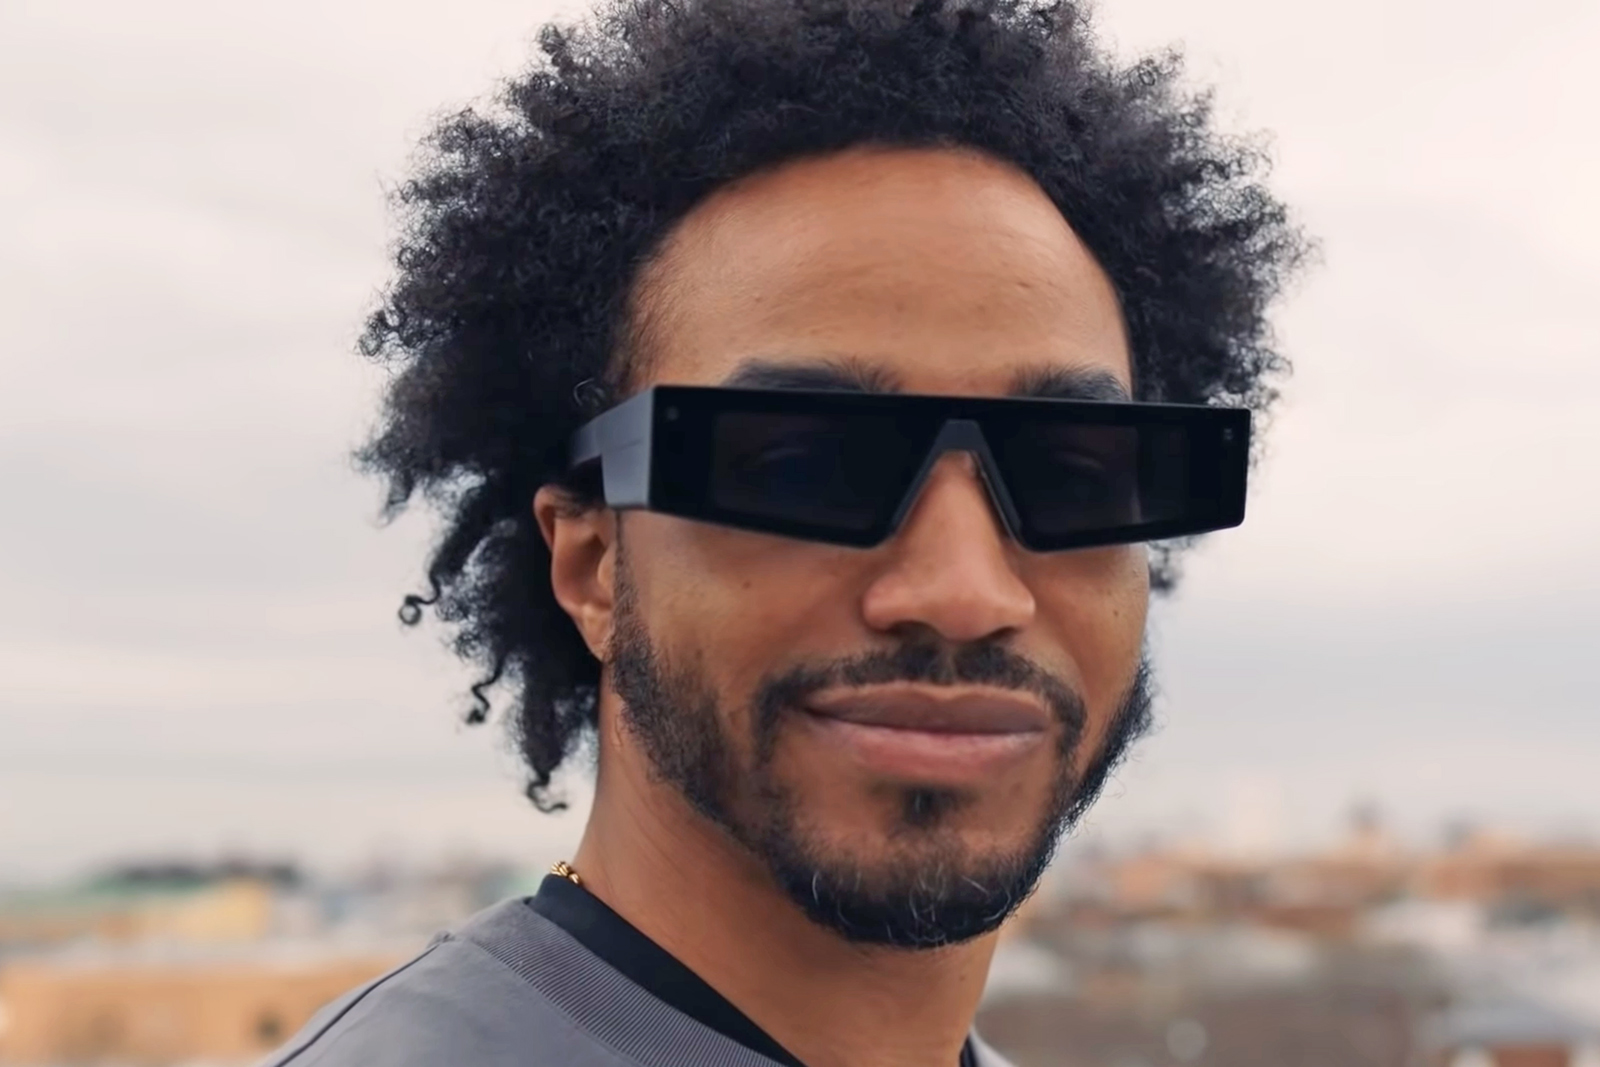 Snapchat Spectacles are designed to let users see the world in AR